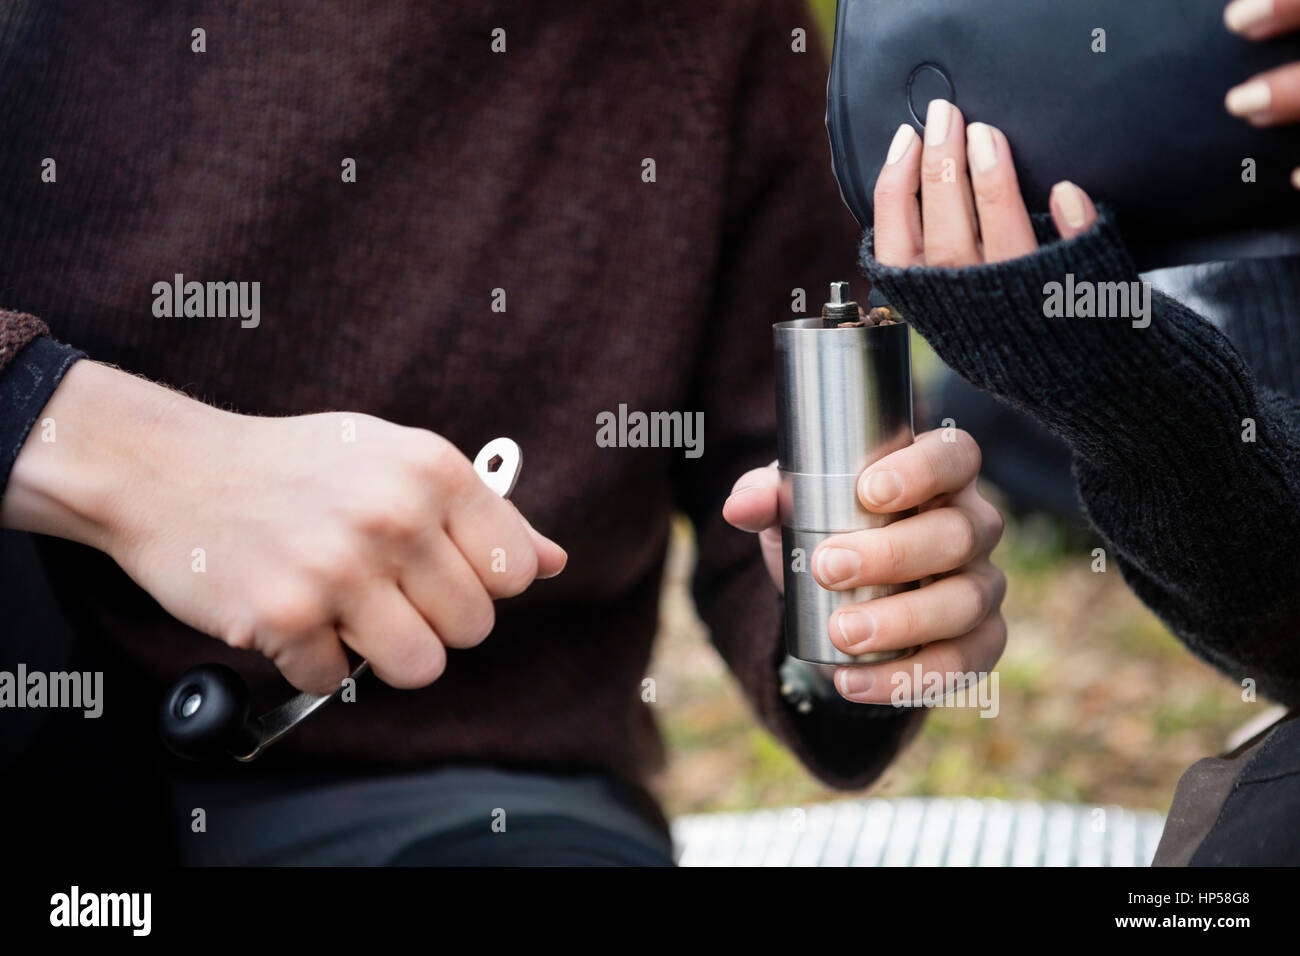 Woman Pouring Coffee Beans Into Grinder Held By Man - Stock Image